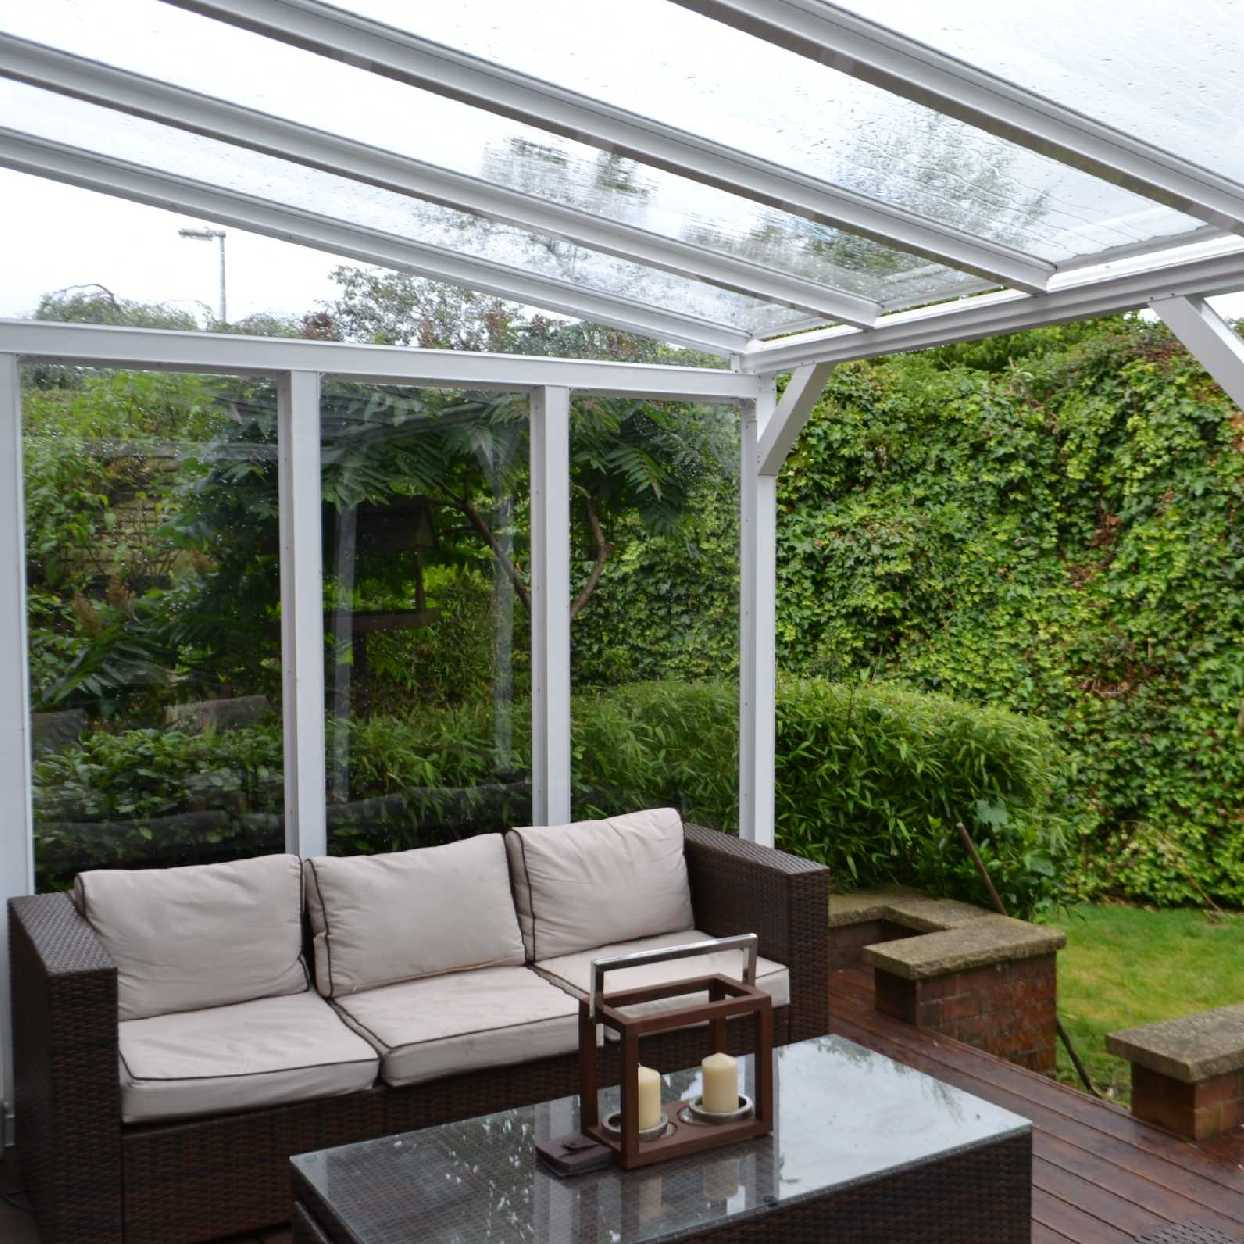 Great selection of Omega Smart White Lean-To Canopy with 16mm Polycarbonate Glazing - 10.6m (W) x 4.0m (P), (5) Supporting Posts